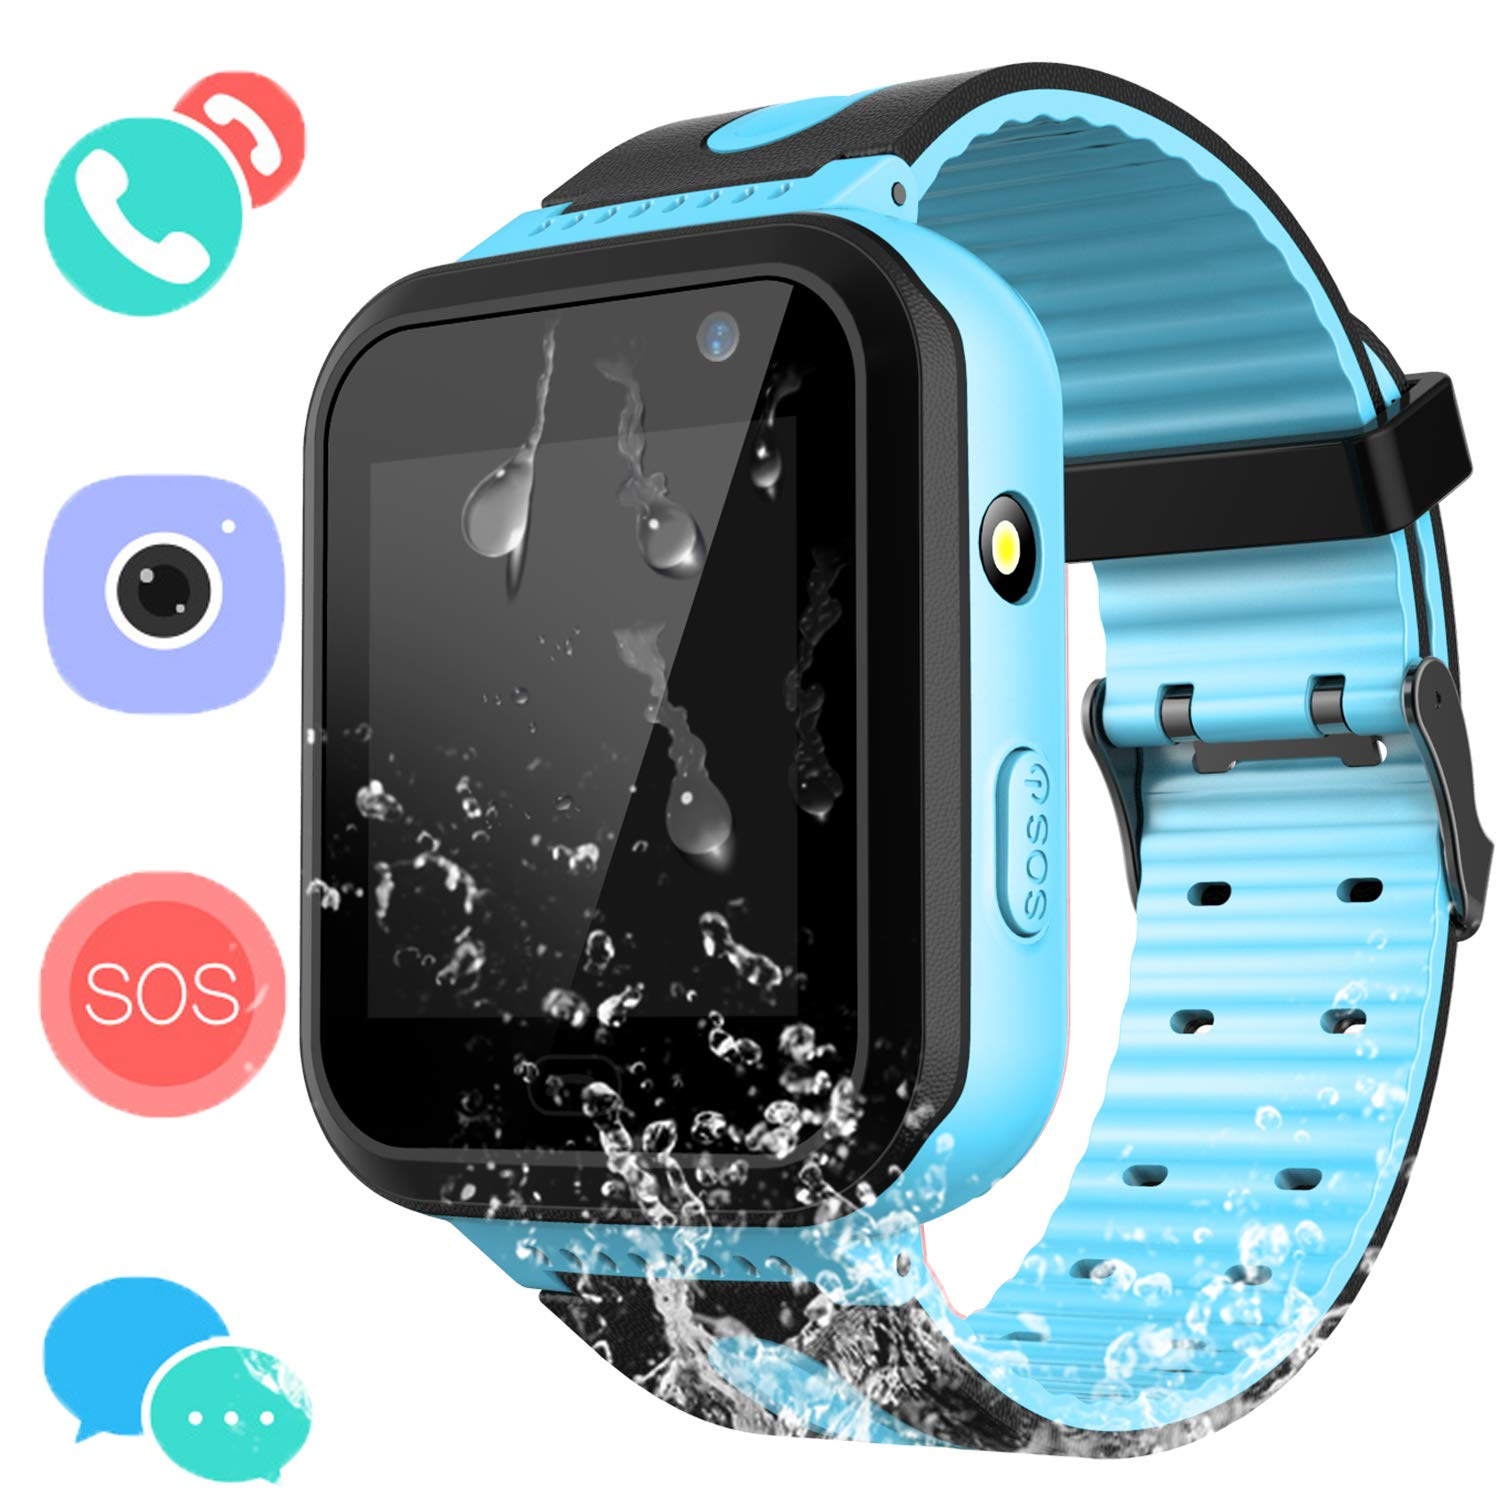 Kids Waterproof Smartwatch with GPS Tracker – Boys & Girls IP67 Waterproof Smart Watch Phone with Camera Games Sports Watches Back to School Supplies Grade Student Gifts